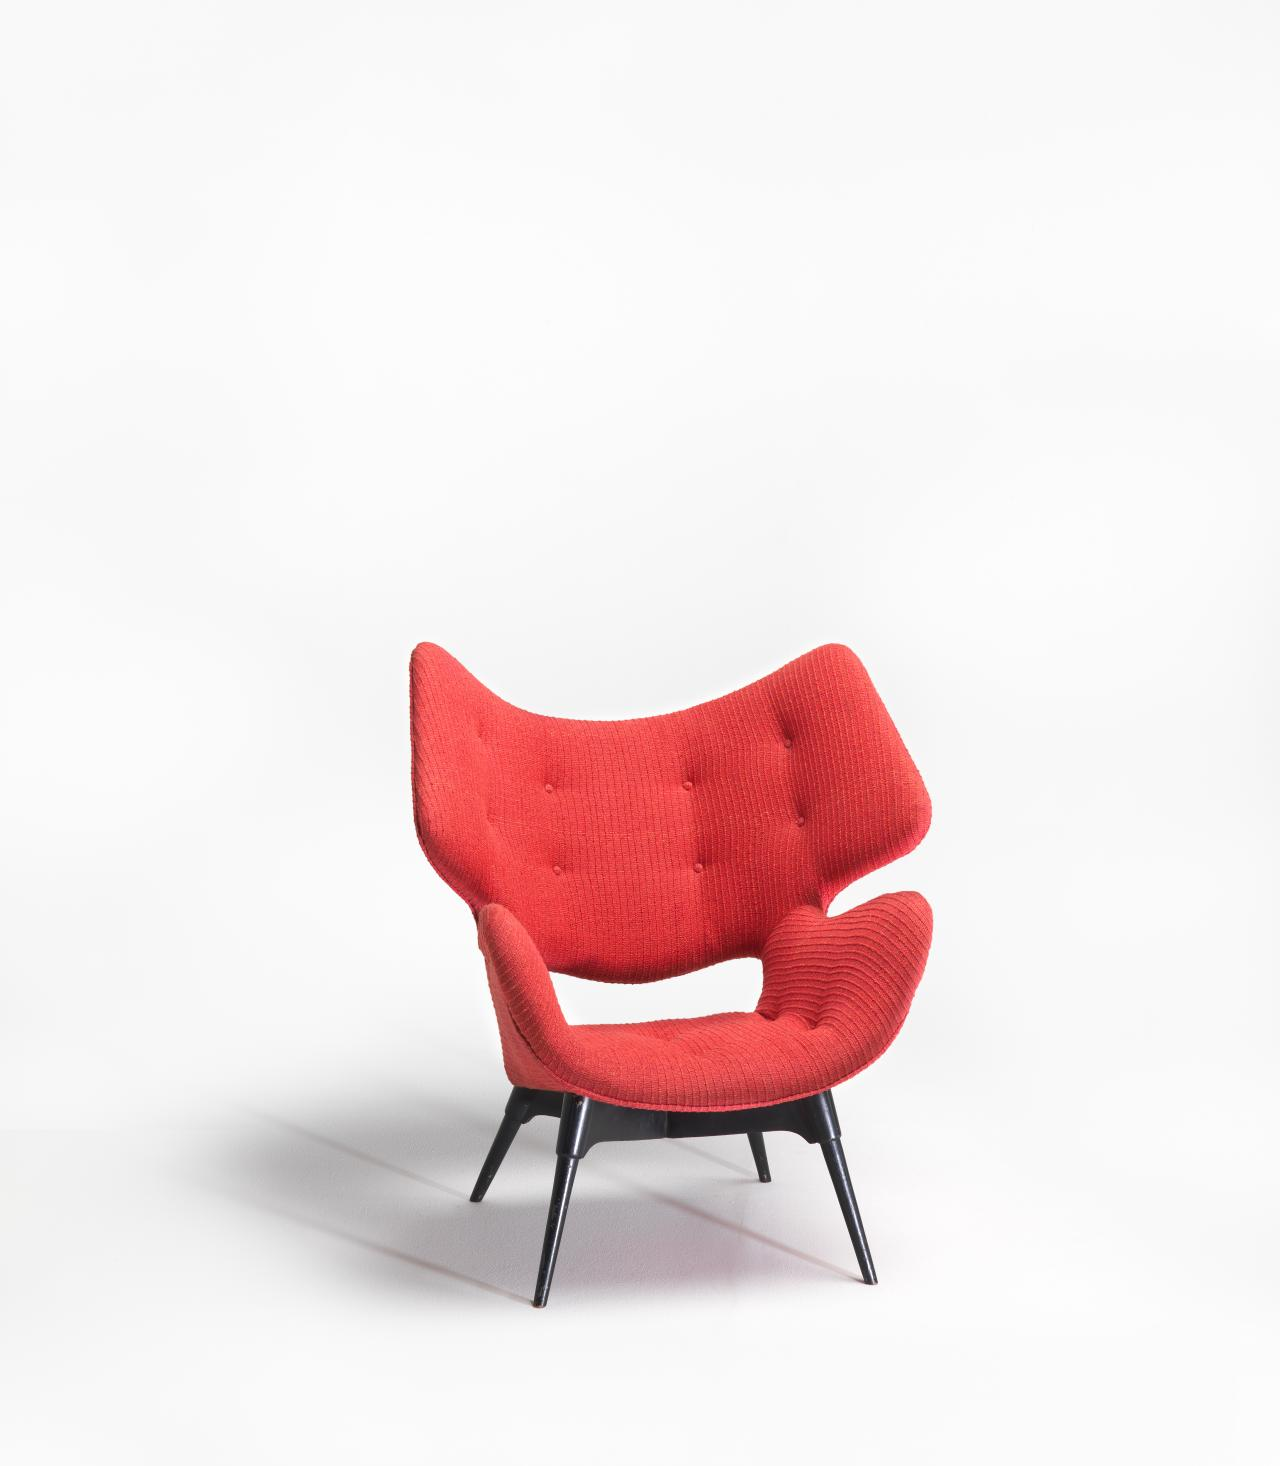 B220H Curl-up Contour chair